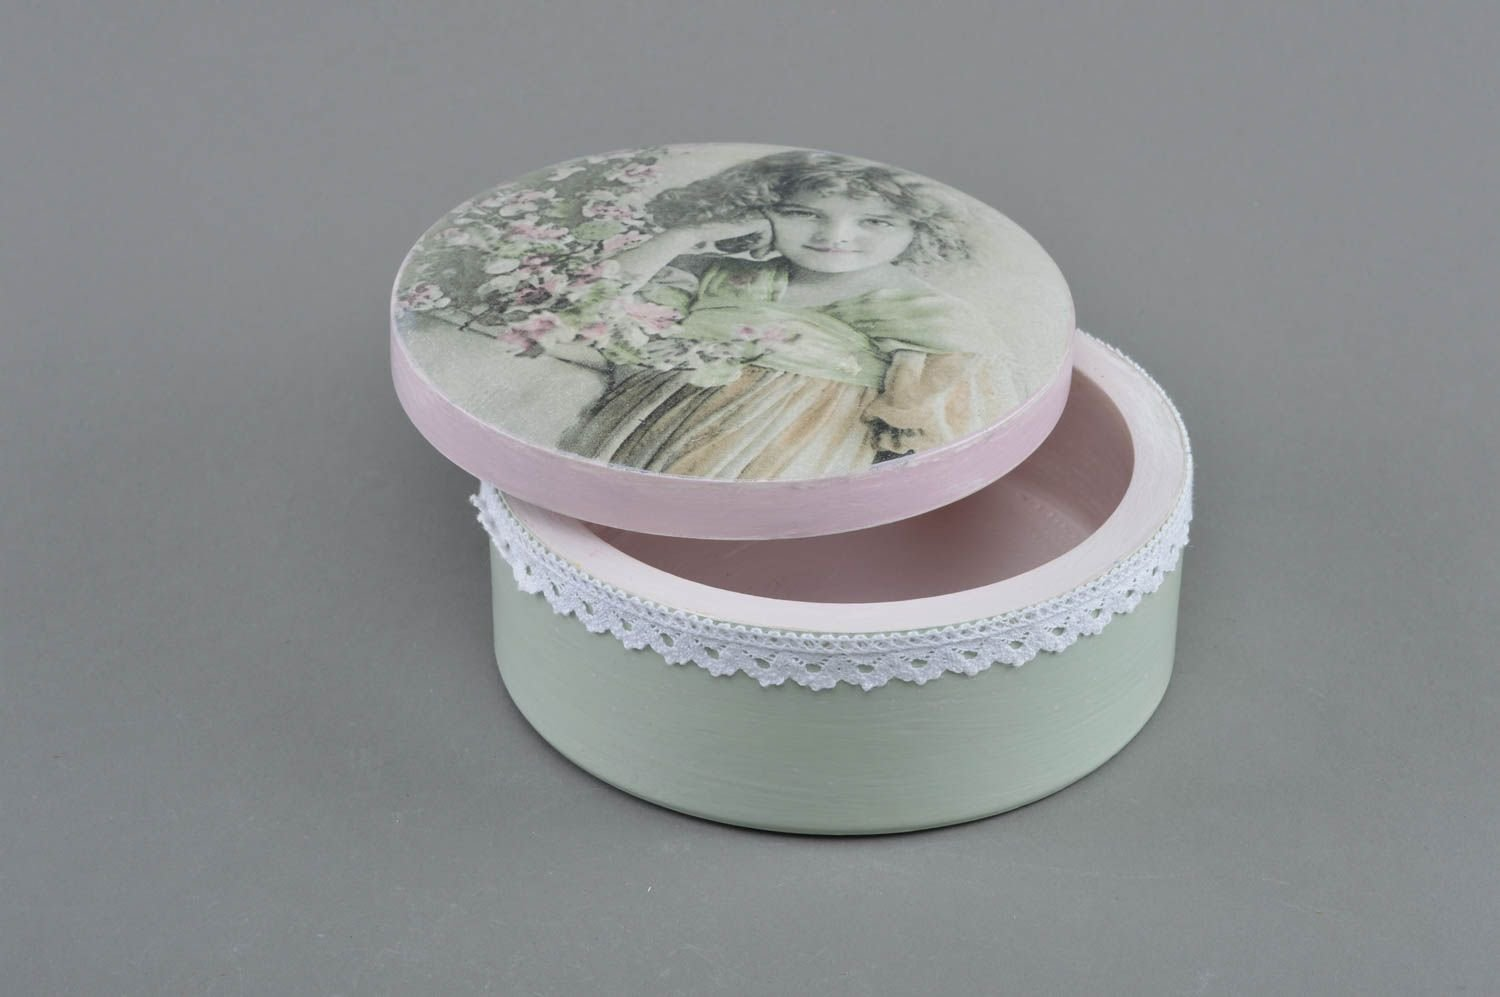 Handmade Designer decoupage Wooden Box of Round Shape Youth by MadeHeart | Buy handmade goods (Image #2)